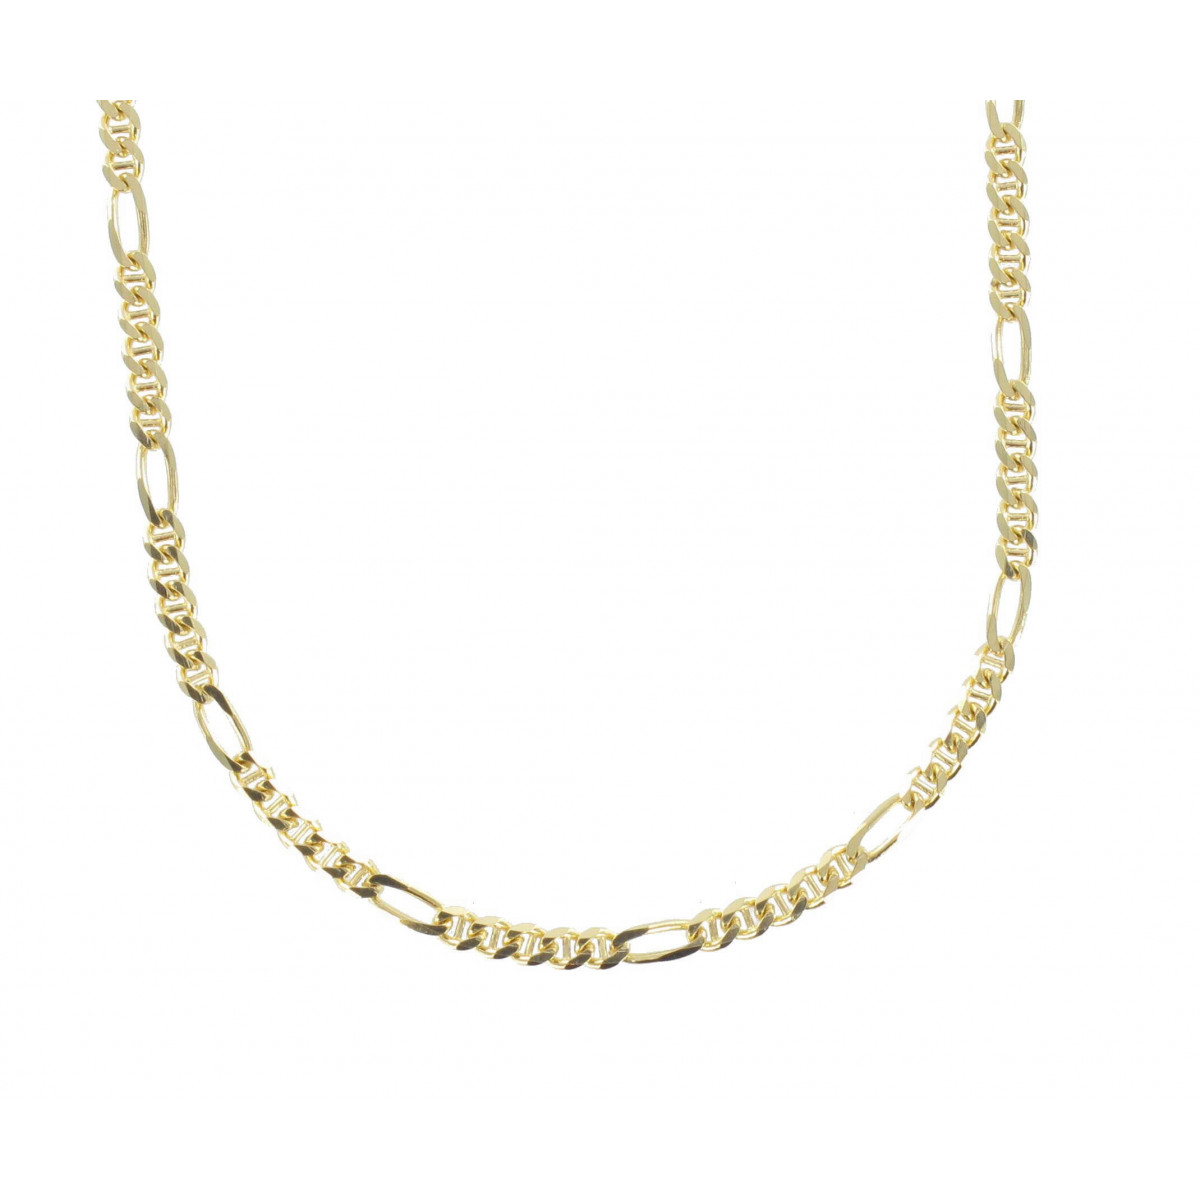 GOLD 50 CENTIMETERS CHAIN